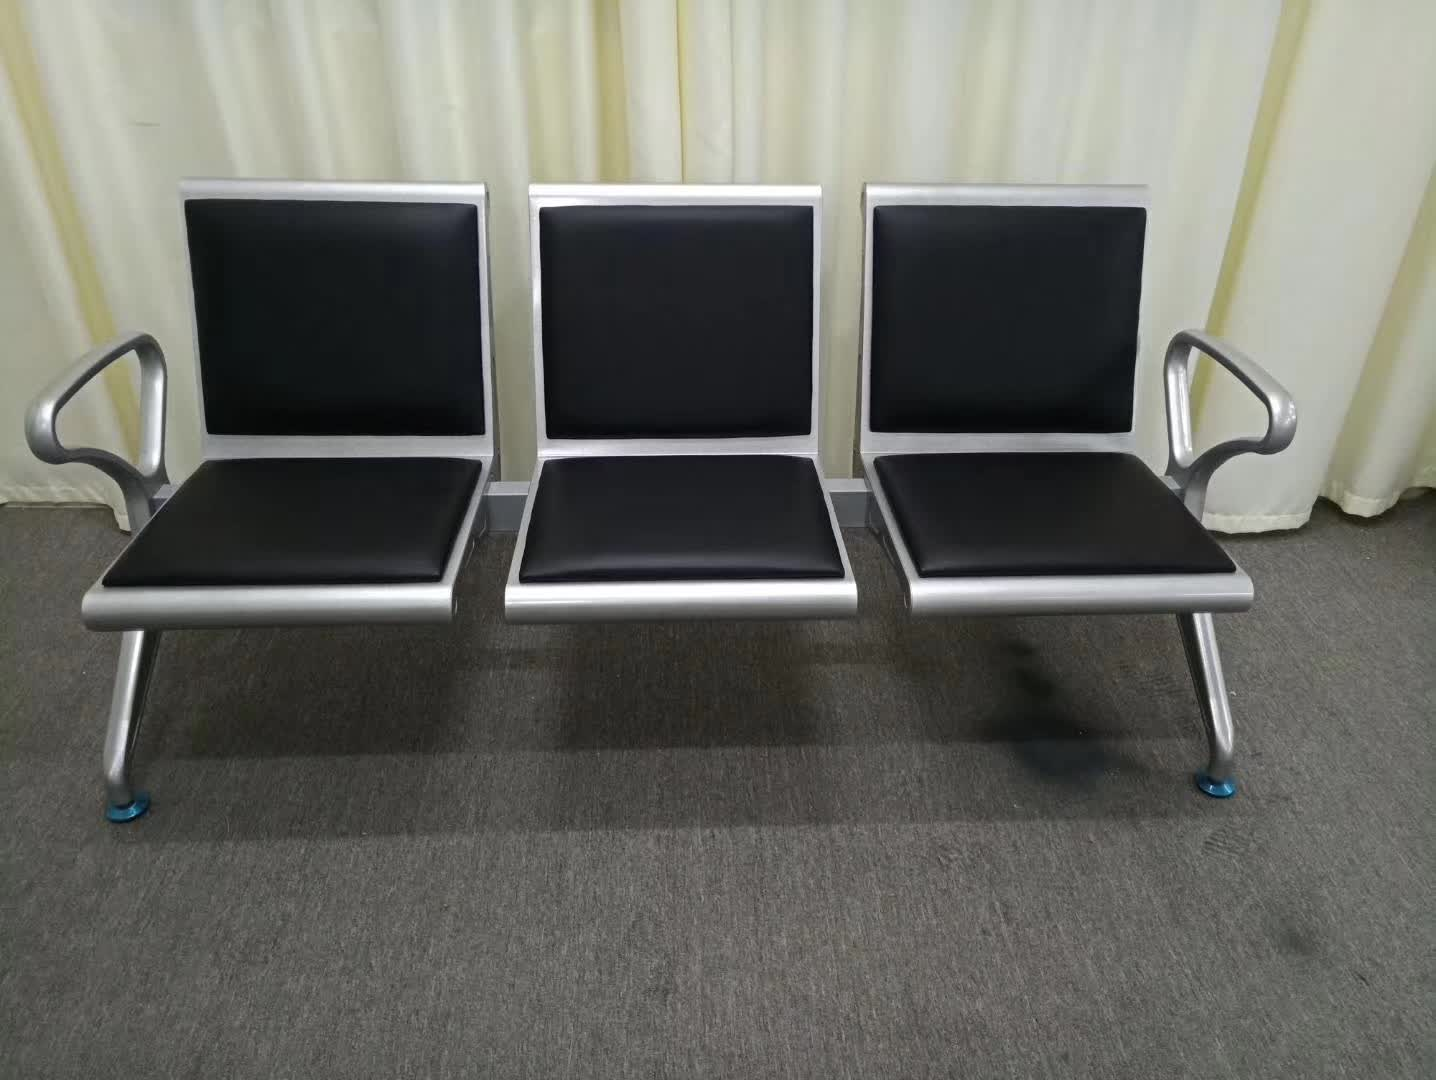 Enjoyable China Guangzhou Airport Lounge Seating Bench Link Chairs Hot Sale Buy Airport Lounge Chairs Airport Bench Chair Airport Seating Chairs Product On Creativecarmelina Interior Chair Design Creativecarmelinacom